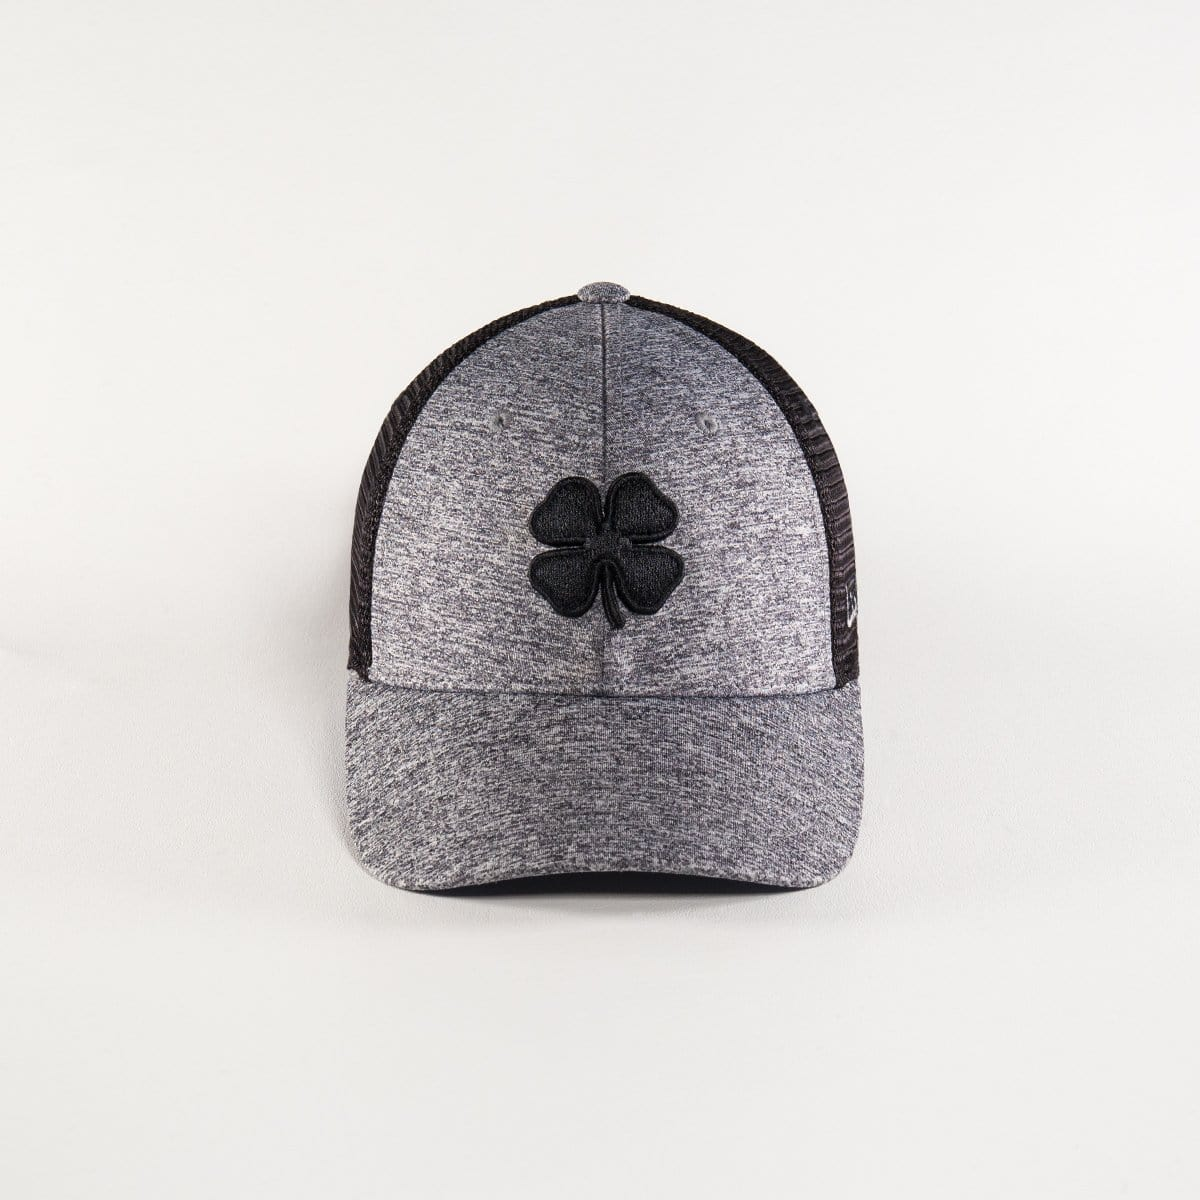 Black Clover Baseball Caps Lucky Heather Mesh Grey equestrian team apparel online tack store mobile tack store custom farm apparel custom show stable clothing equestrian lifestyle horse show clothing riding clothes horses equestrian tack store